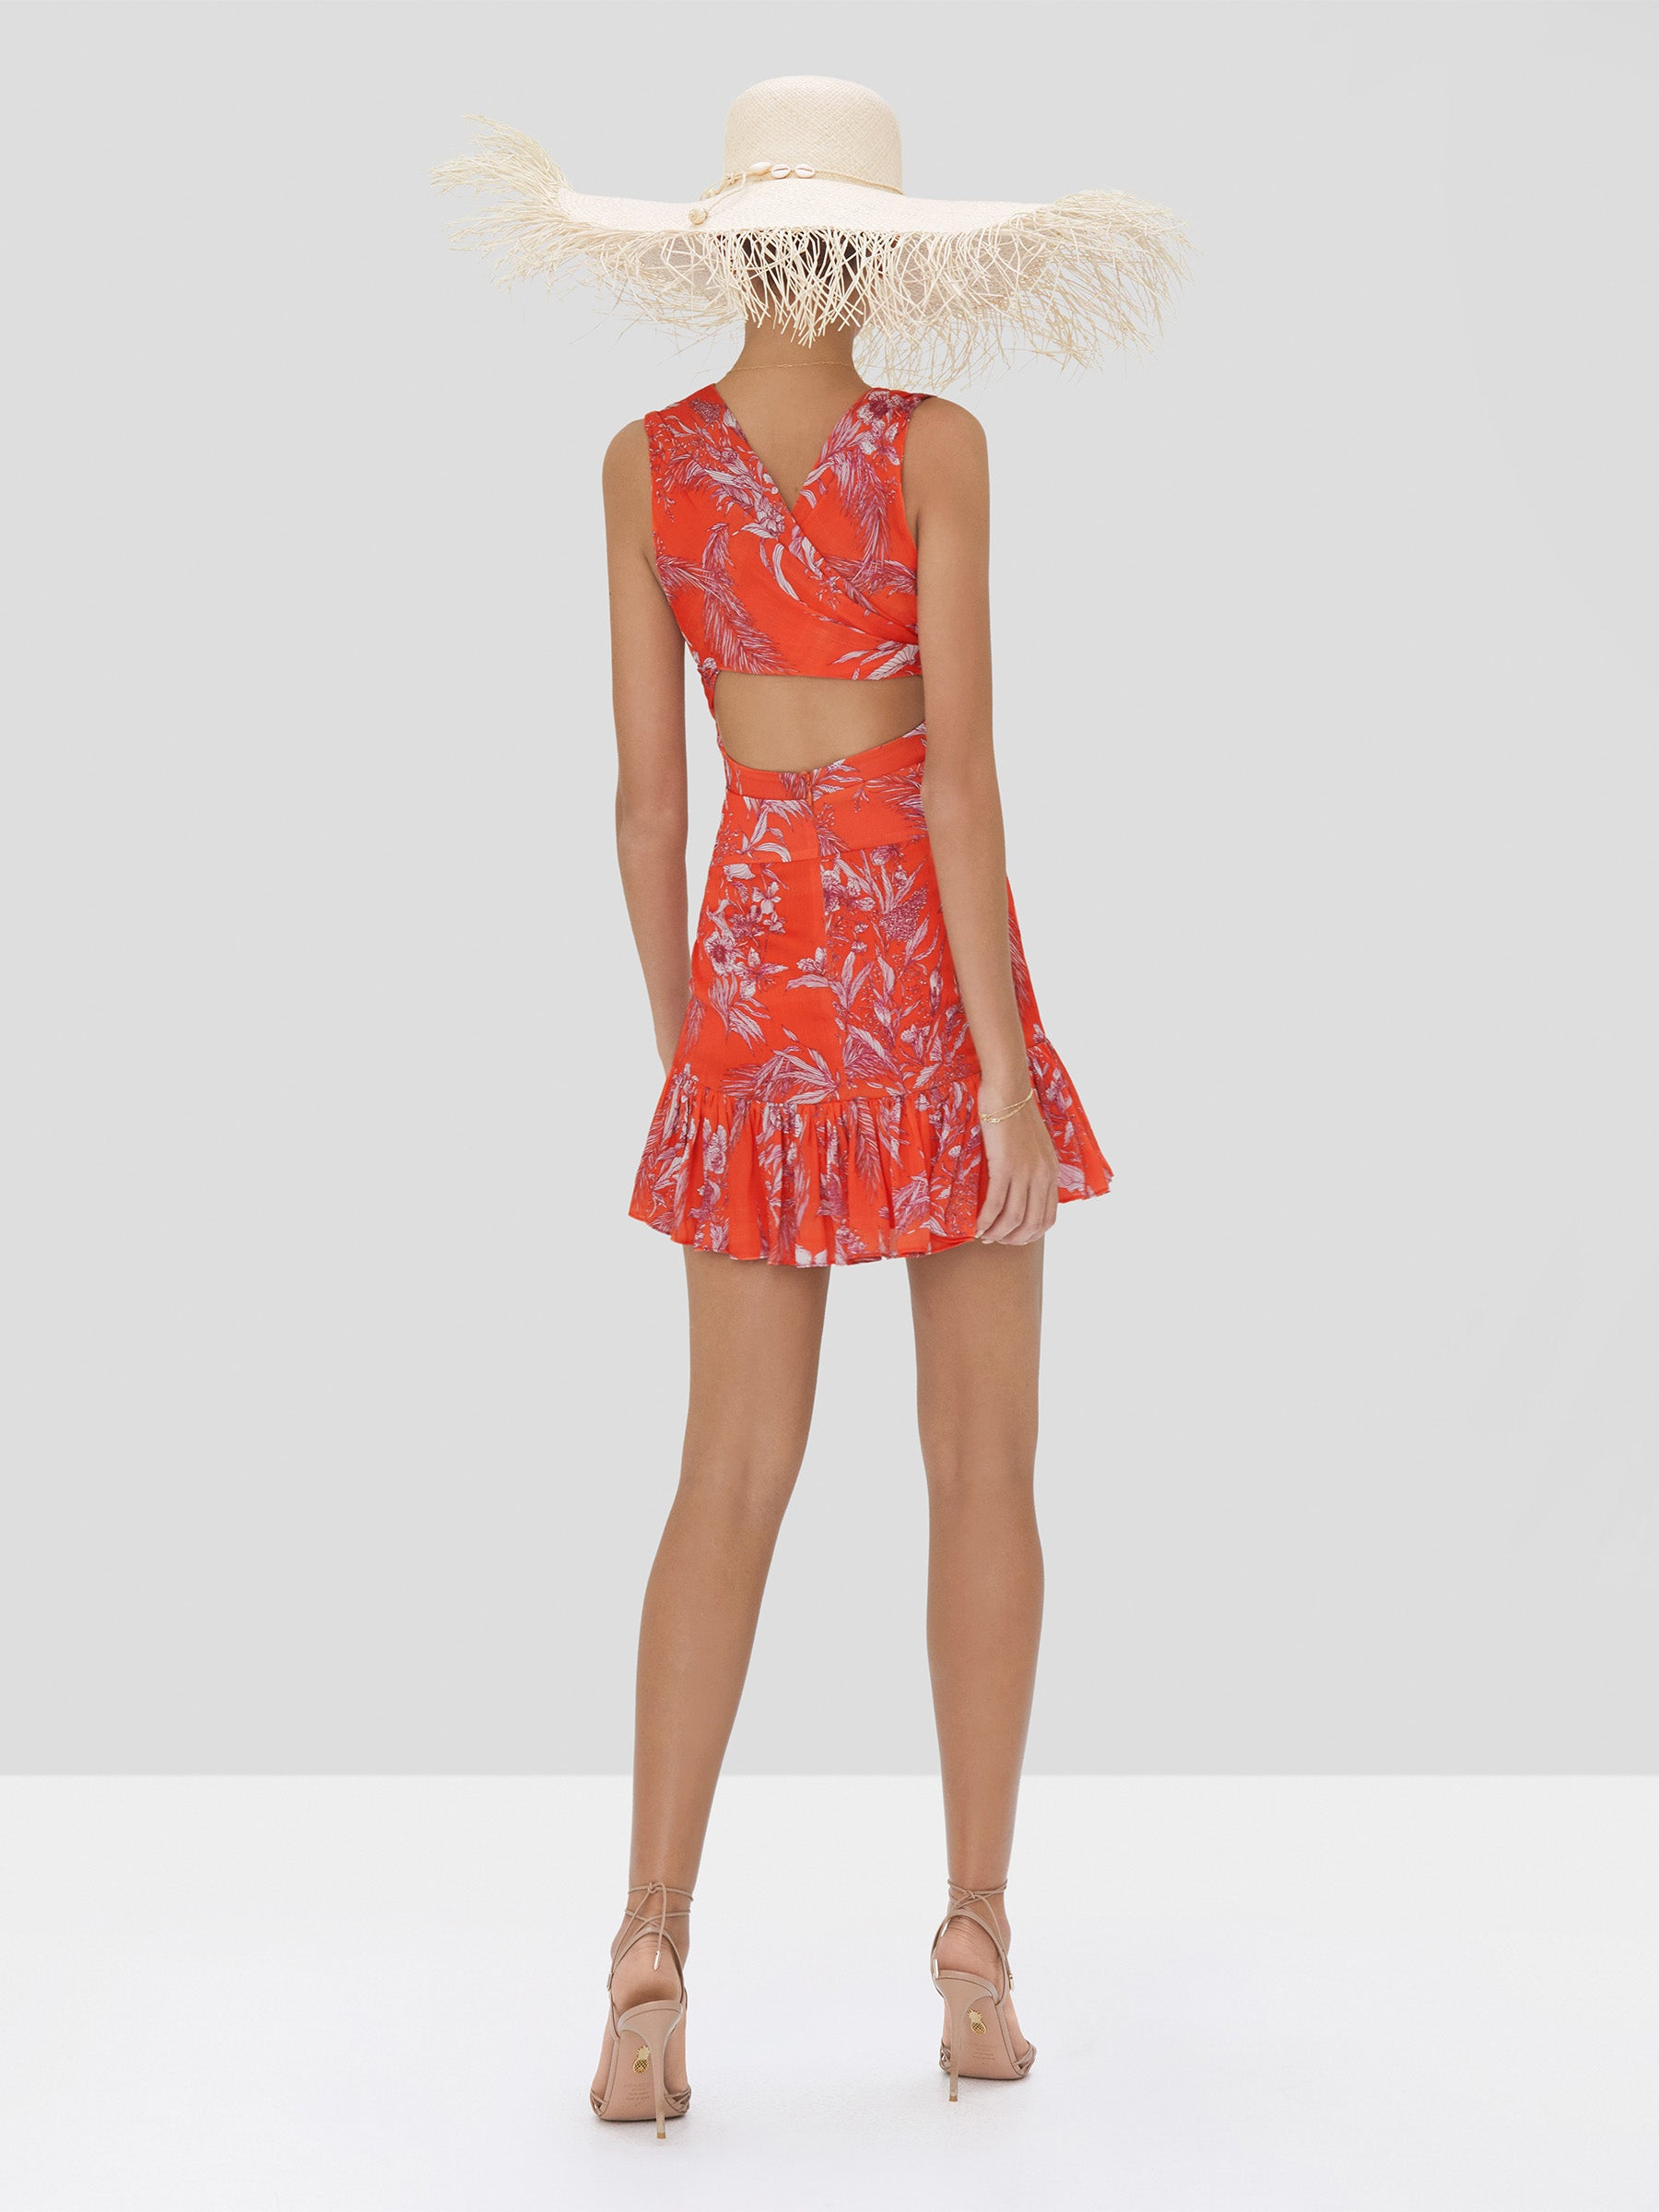 Alexis Cassara Dress in Mandarin Palm from Spring Summer 2020 Collection - Rear View